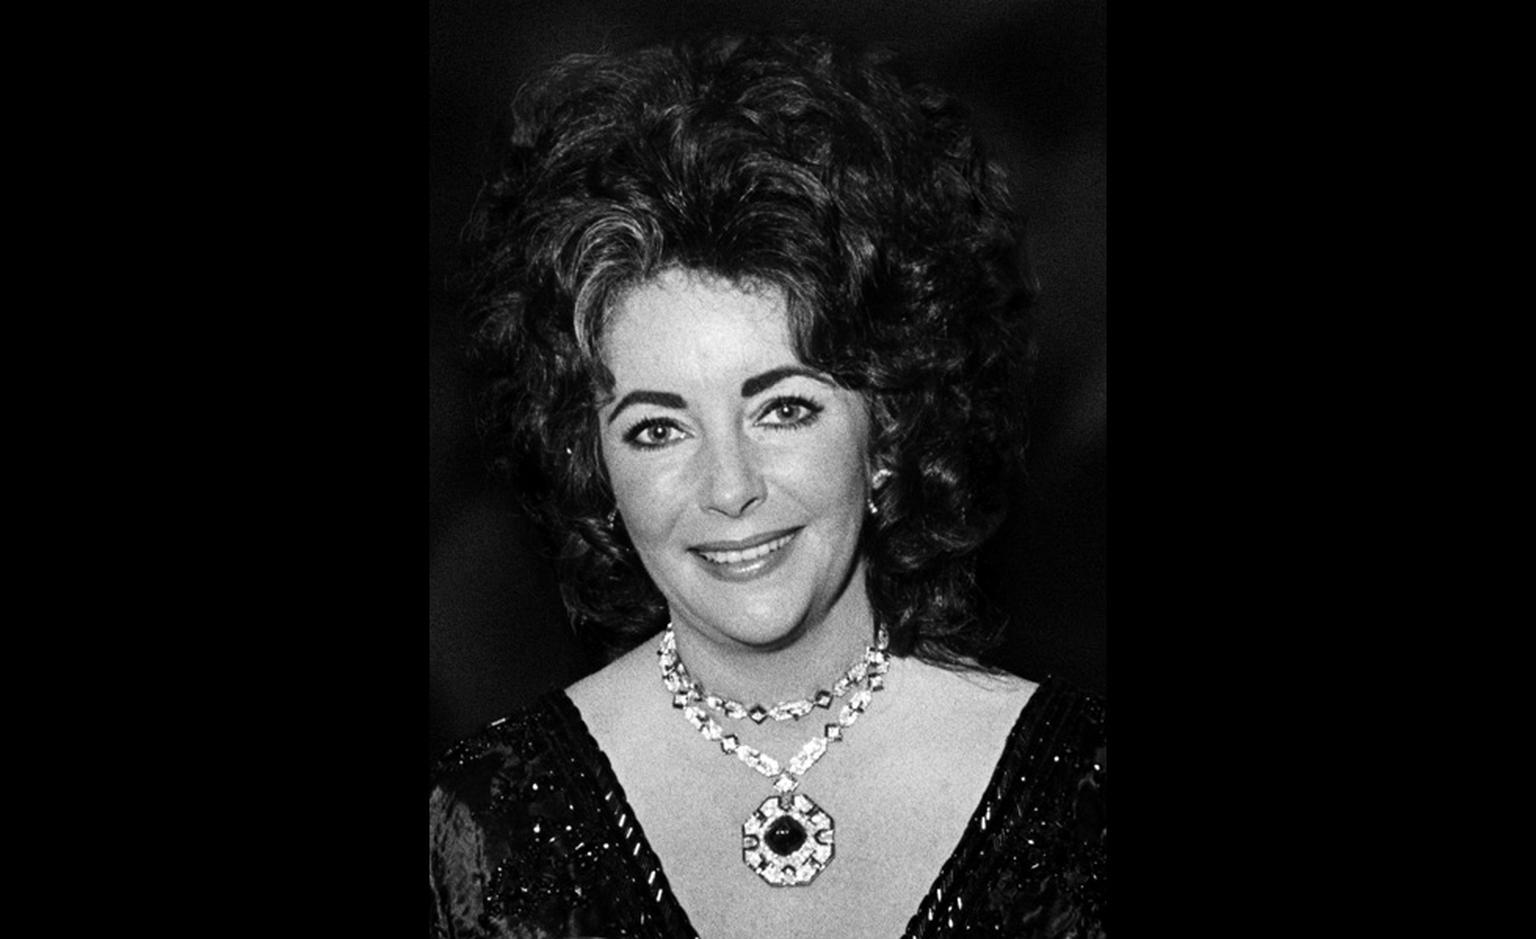 Elizabeth Taylor in Budapest in 1972 wearing the Bulgari sapphire sautoir with a sugarloaf cabochon sapphire of 52.72 carats, a gift from Richard Burton for Elizabeth Taylor's 40th birthday in 1972. She later added the ring.